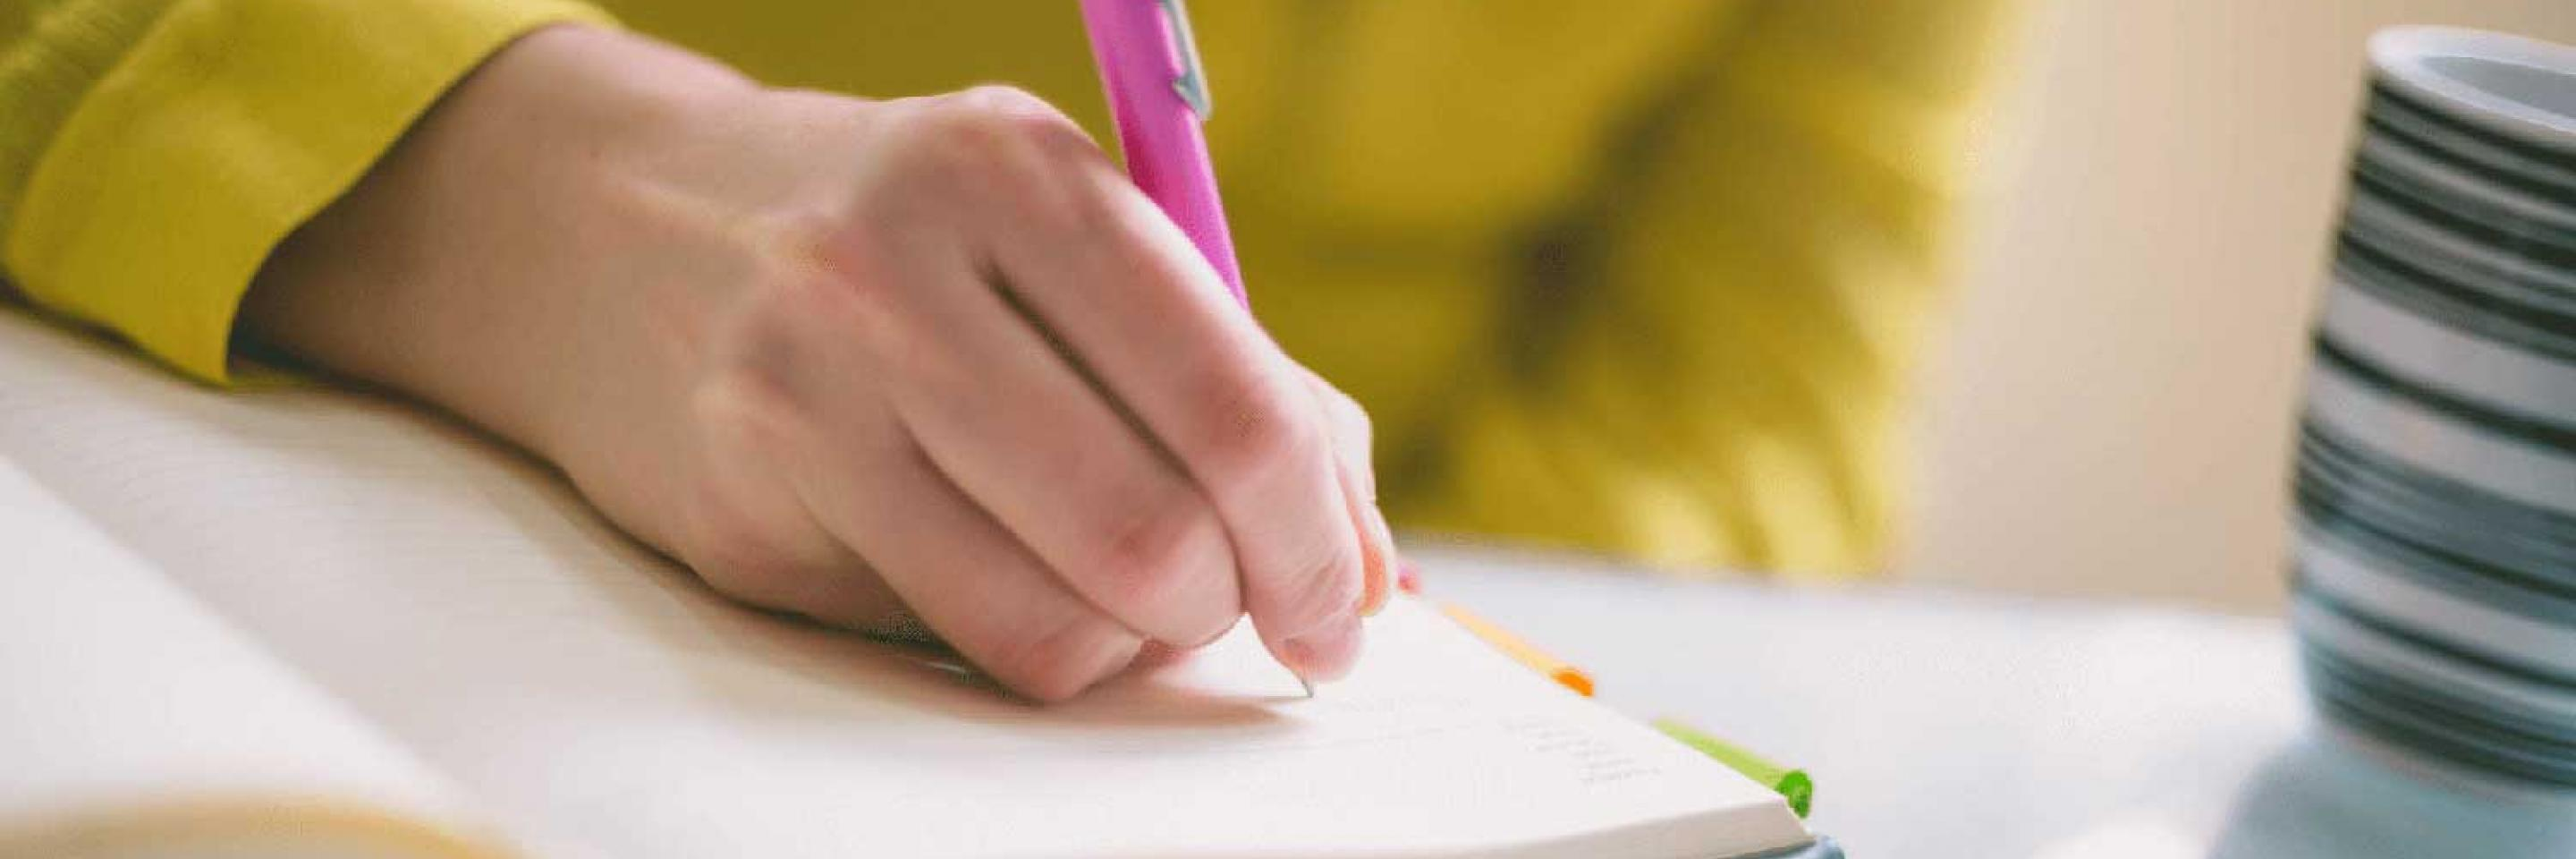 Hand writing with a pink pen